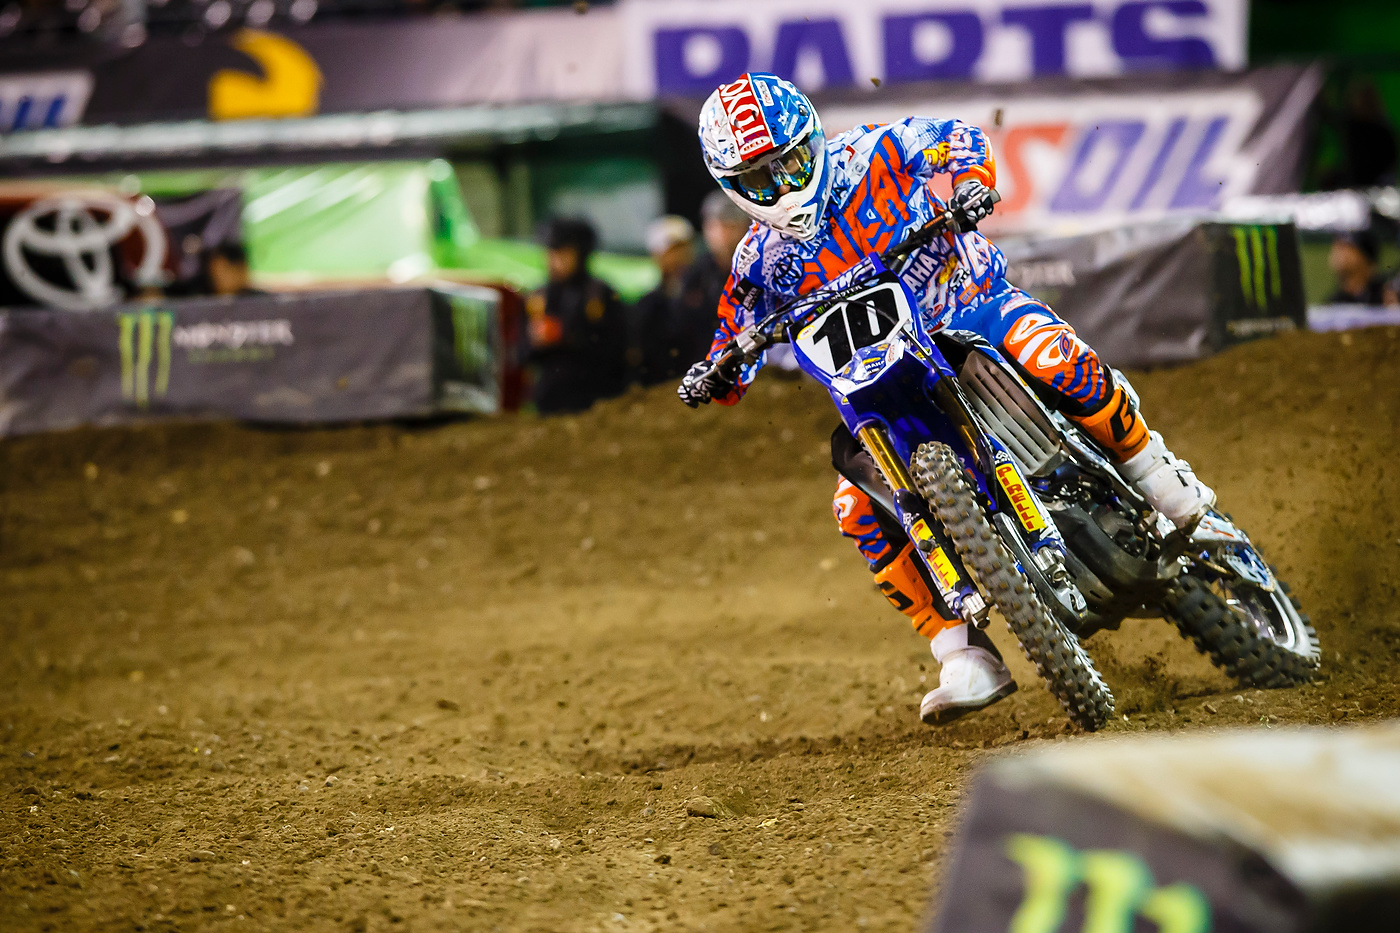 2014 Anaheim Iii Sx Wallpapers Transworld Motocross Auto Design Tech 1400x933